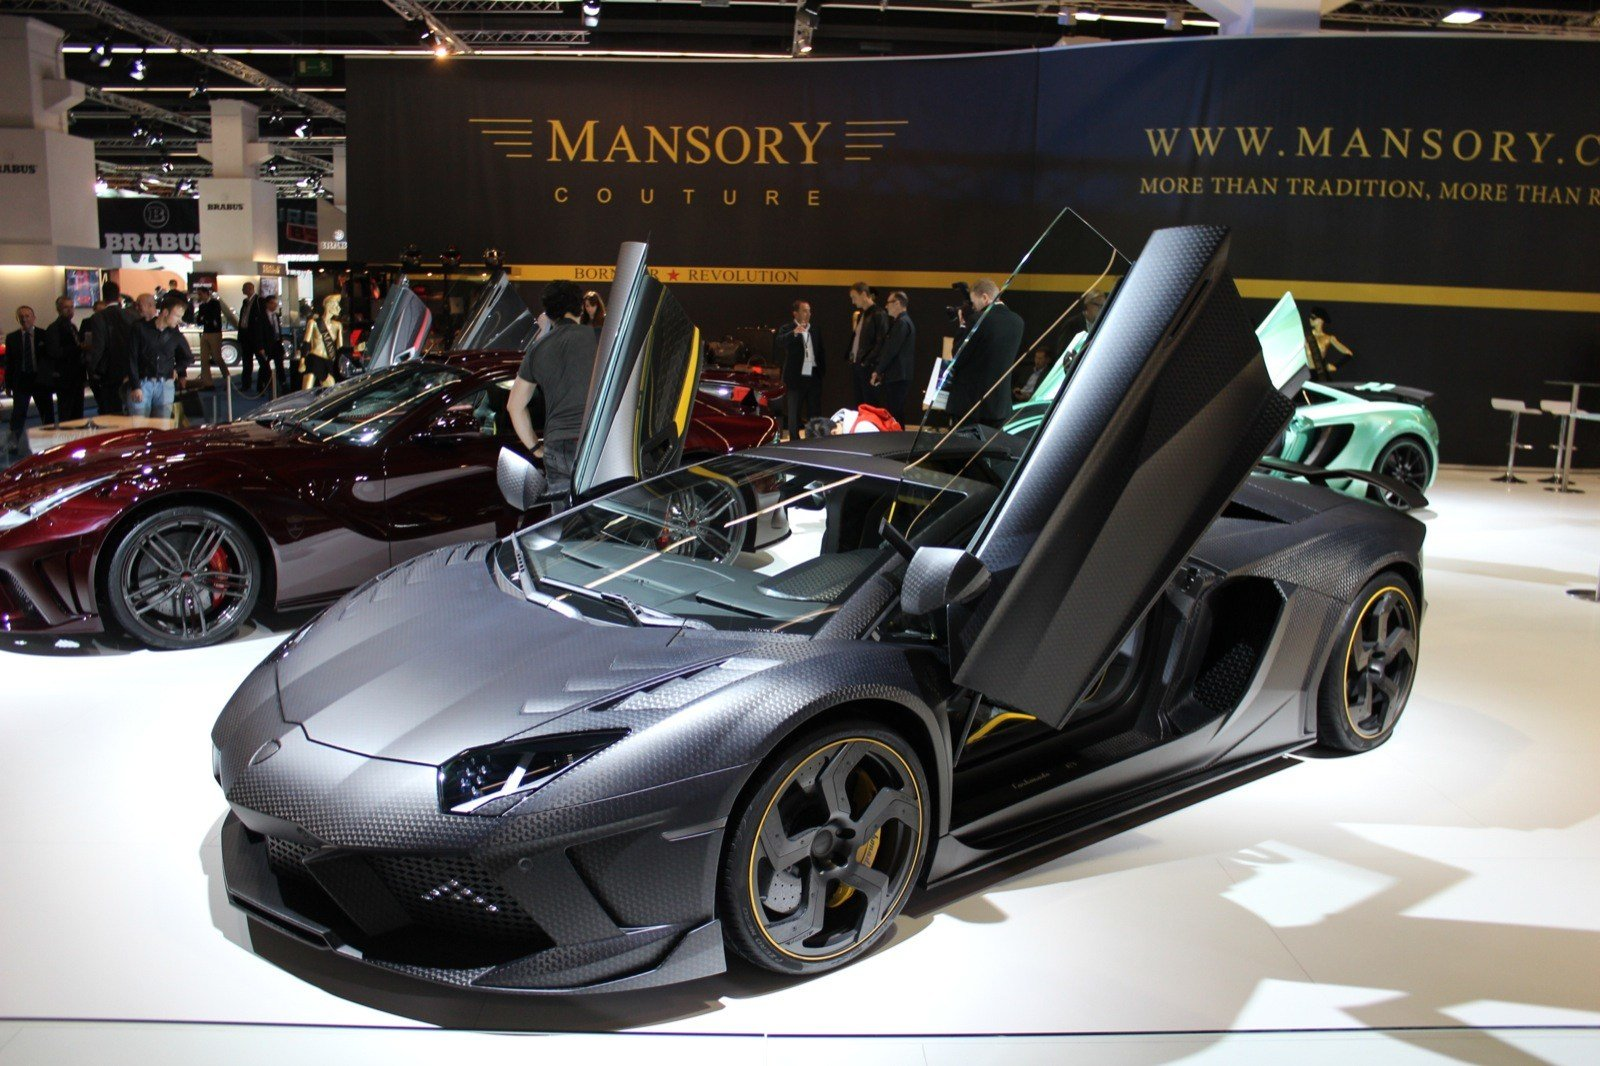 Latest Mansory Turns To Stealth With Aventador Based Carbonado Free Download